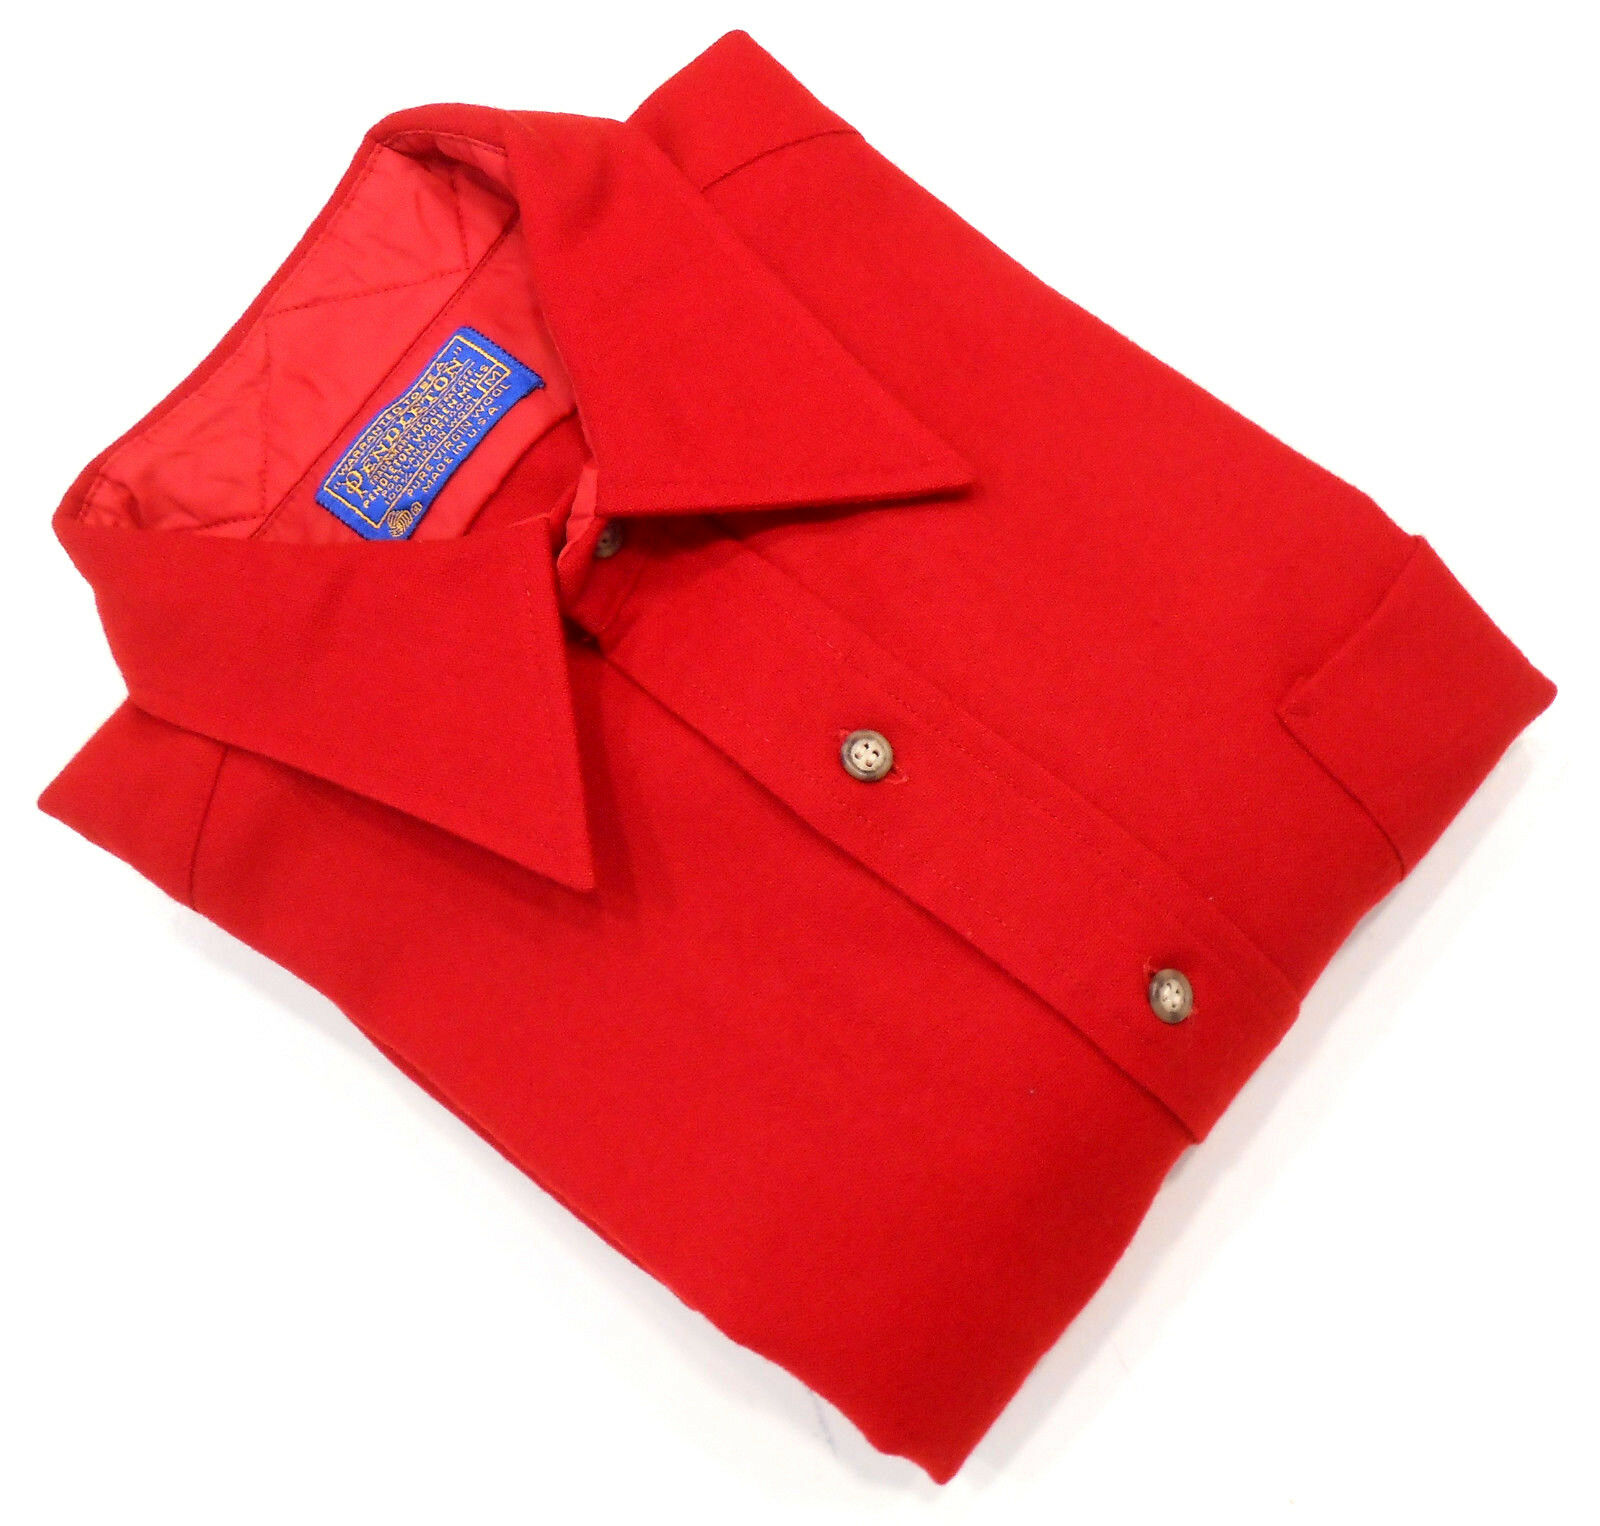 PENDLETON RED VIRGIN WOOL HUNTING WORK FITTED SHIRT MADE IN USA SZ M 15.5 - MINT